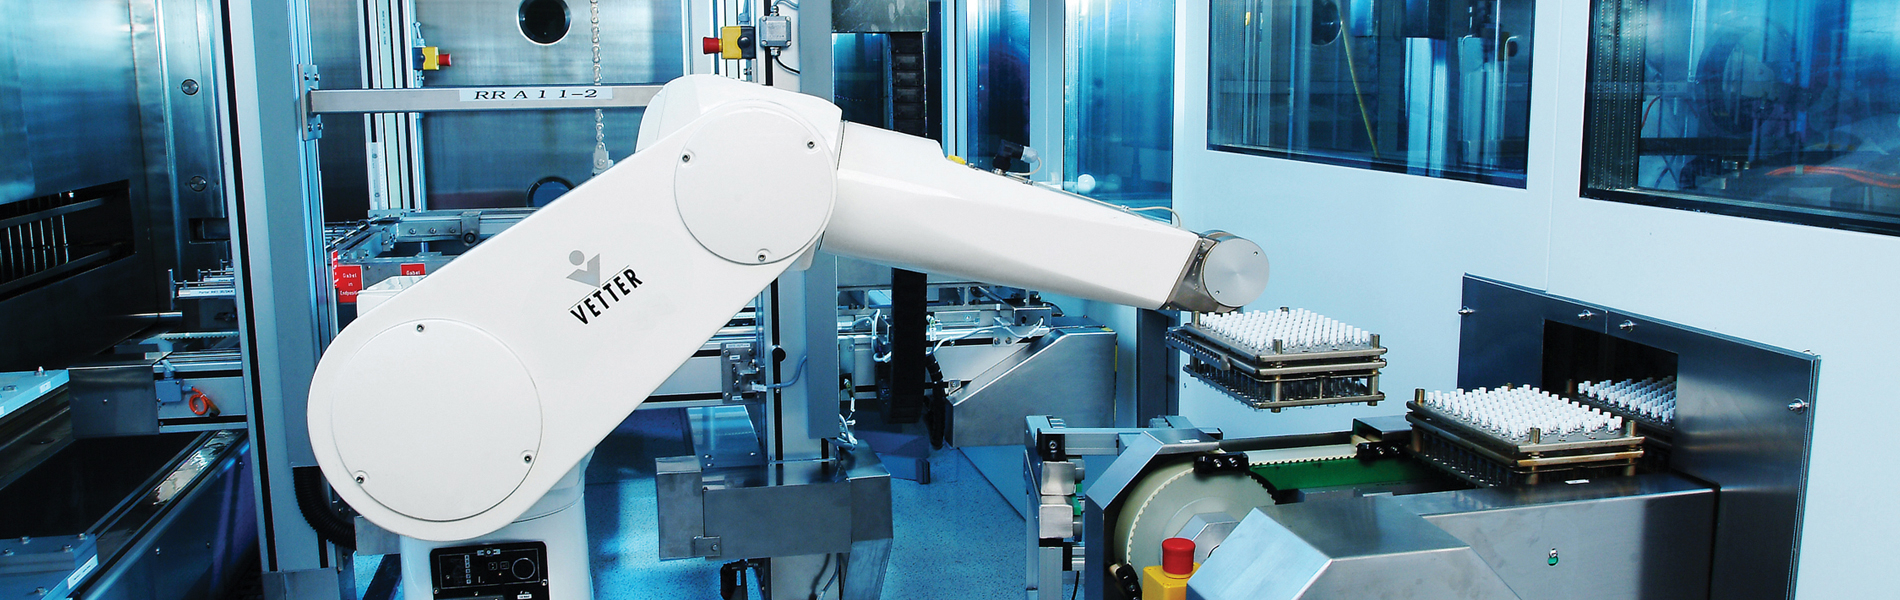 Aseptic  processing robotics banner - ISPE Pharmaceutical Engineering